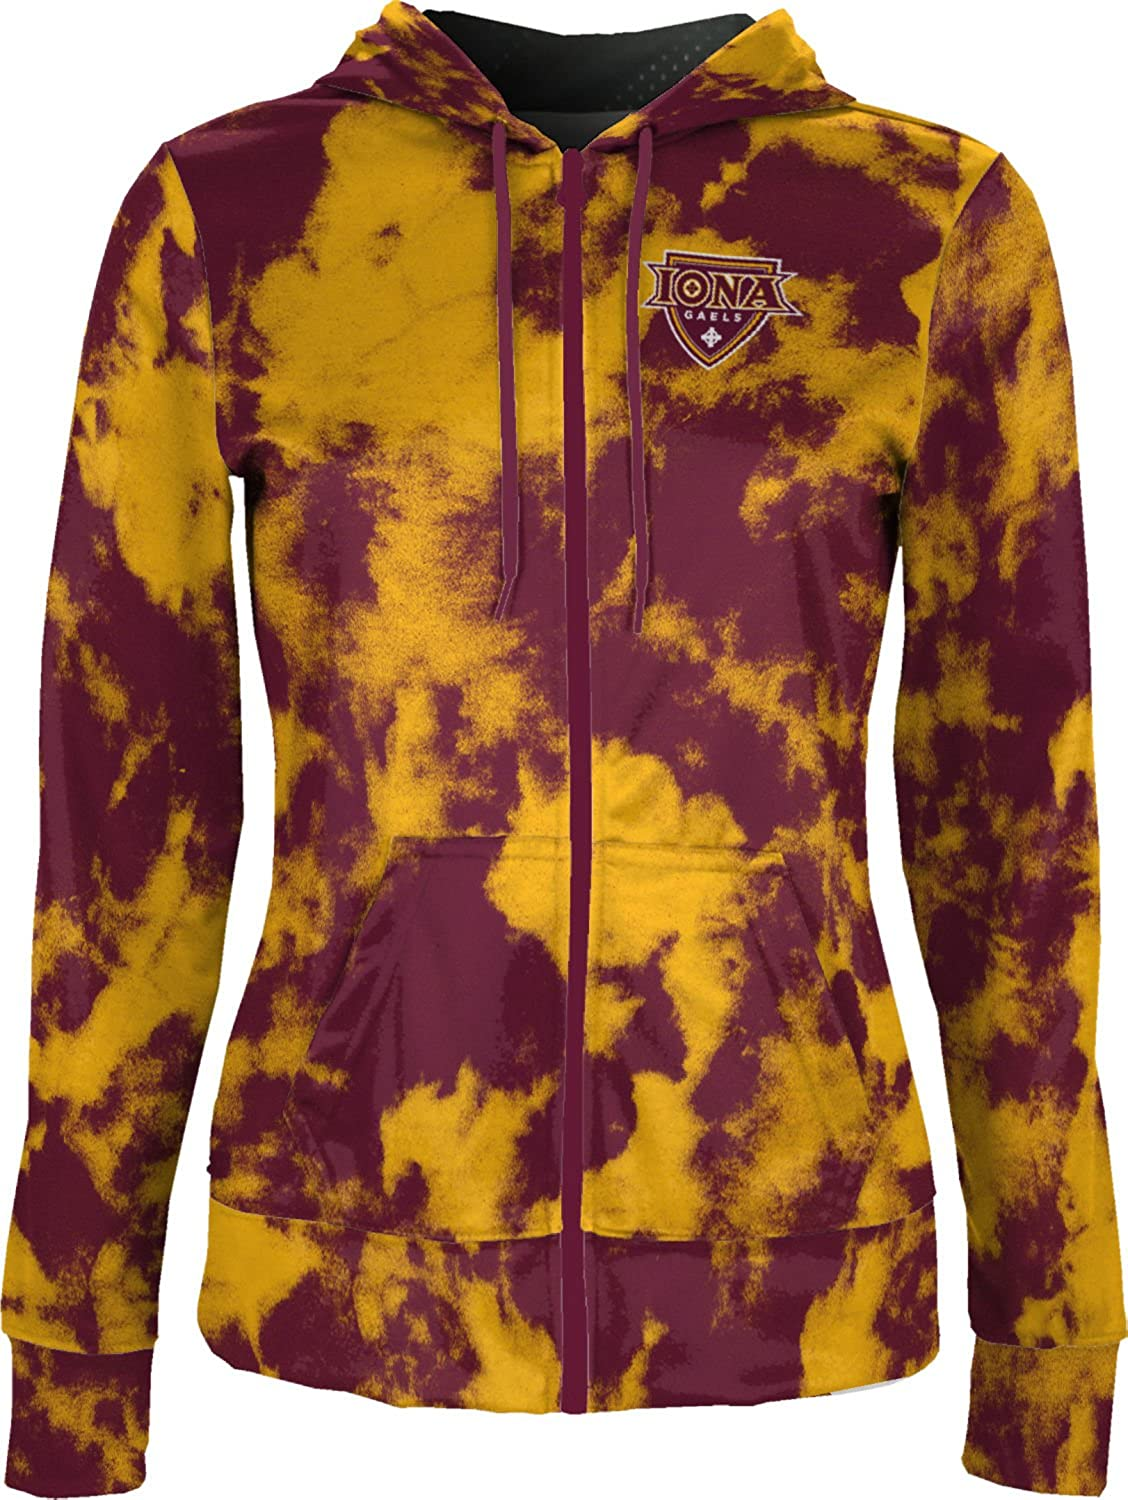 School Spirit Sweatshirt ProSphere Iona College Girls Zipper Hoodie Grunge